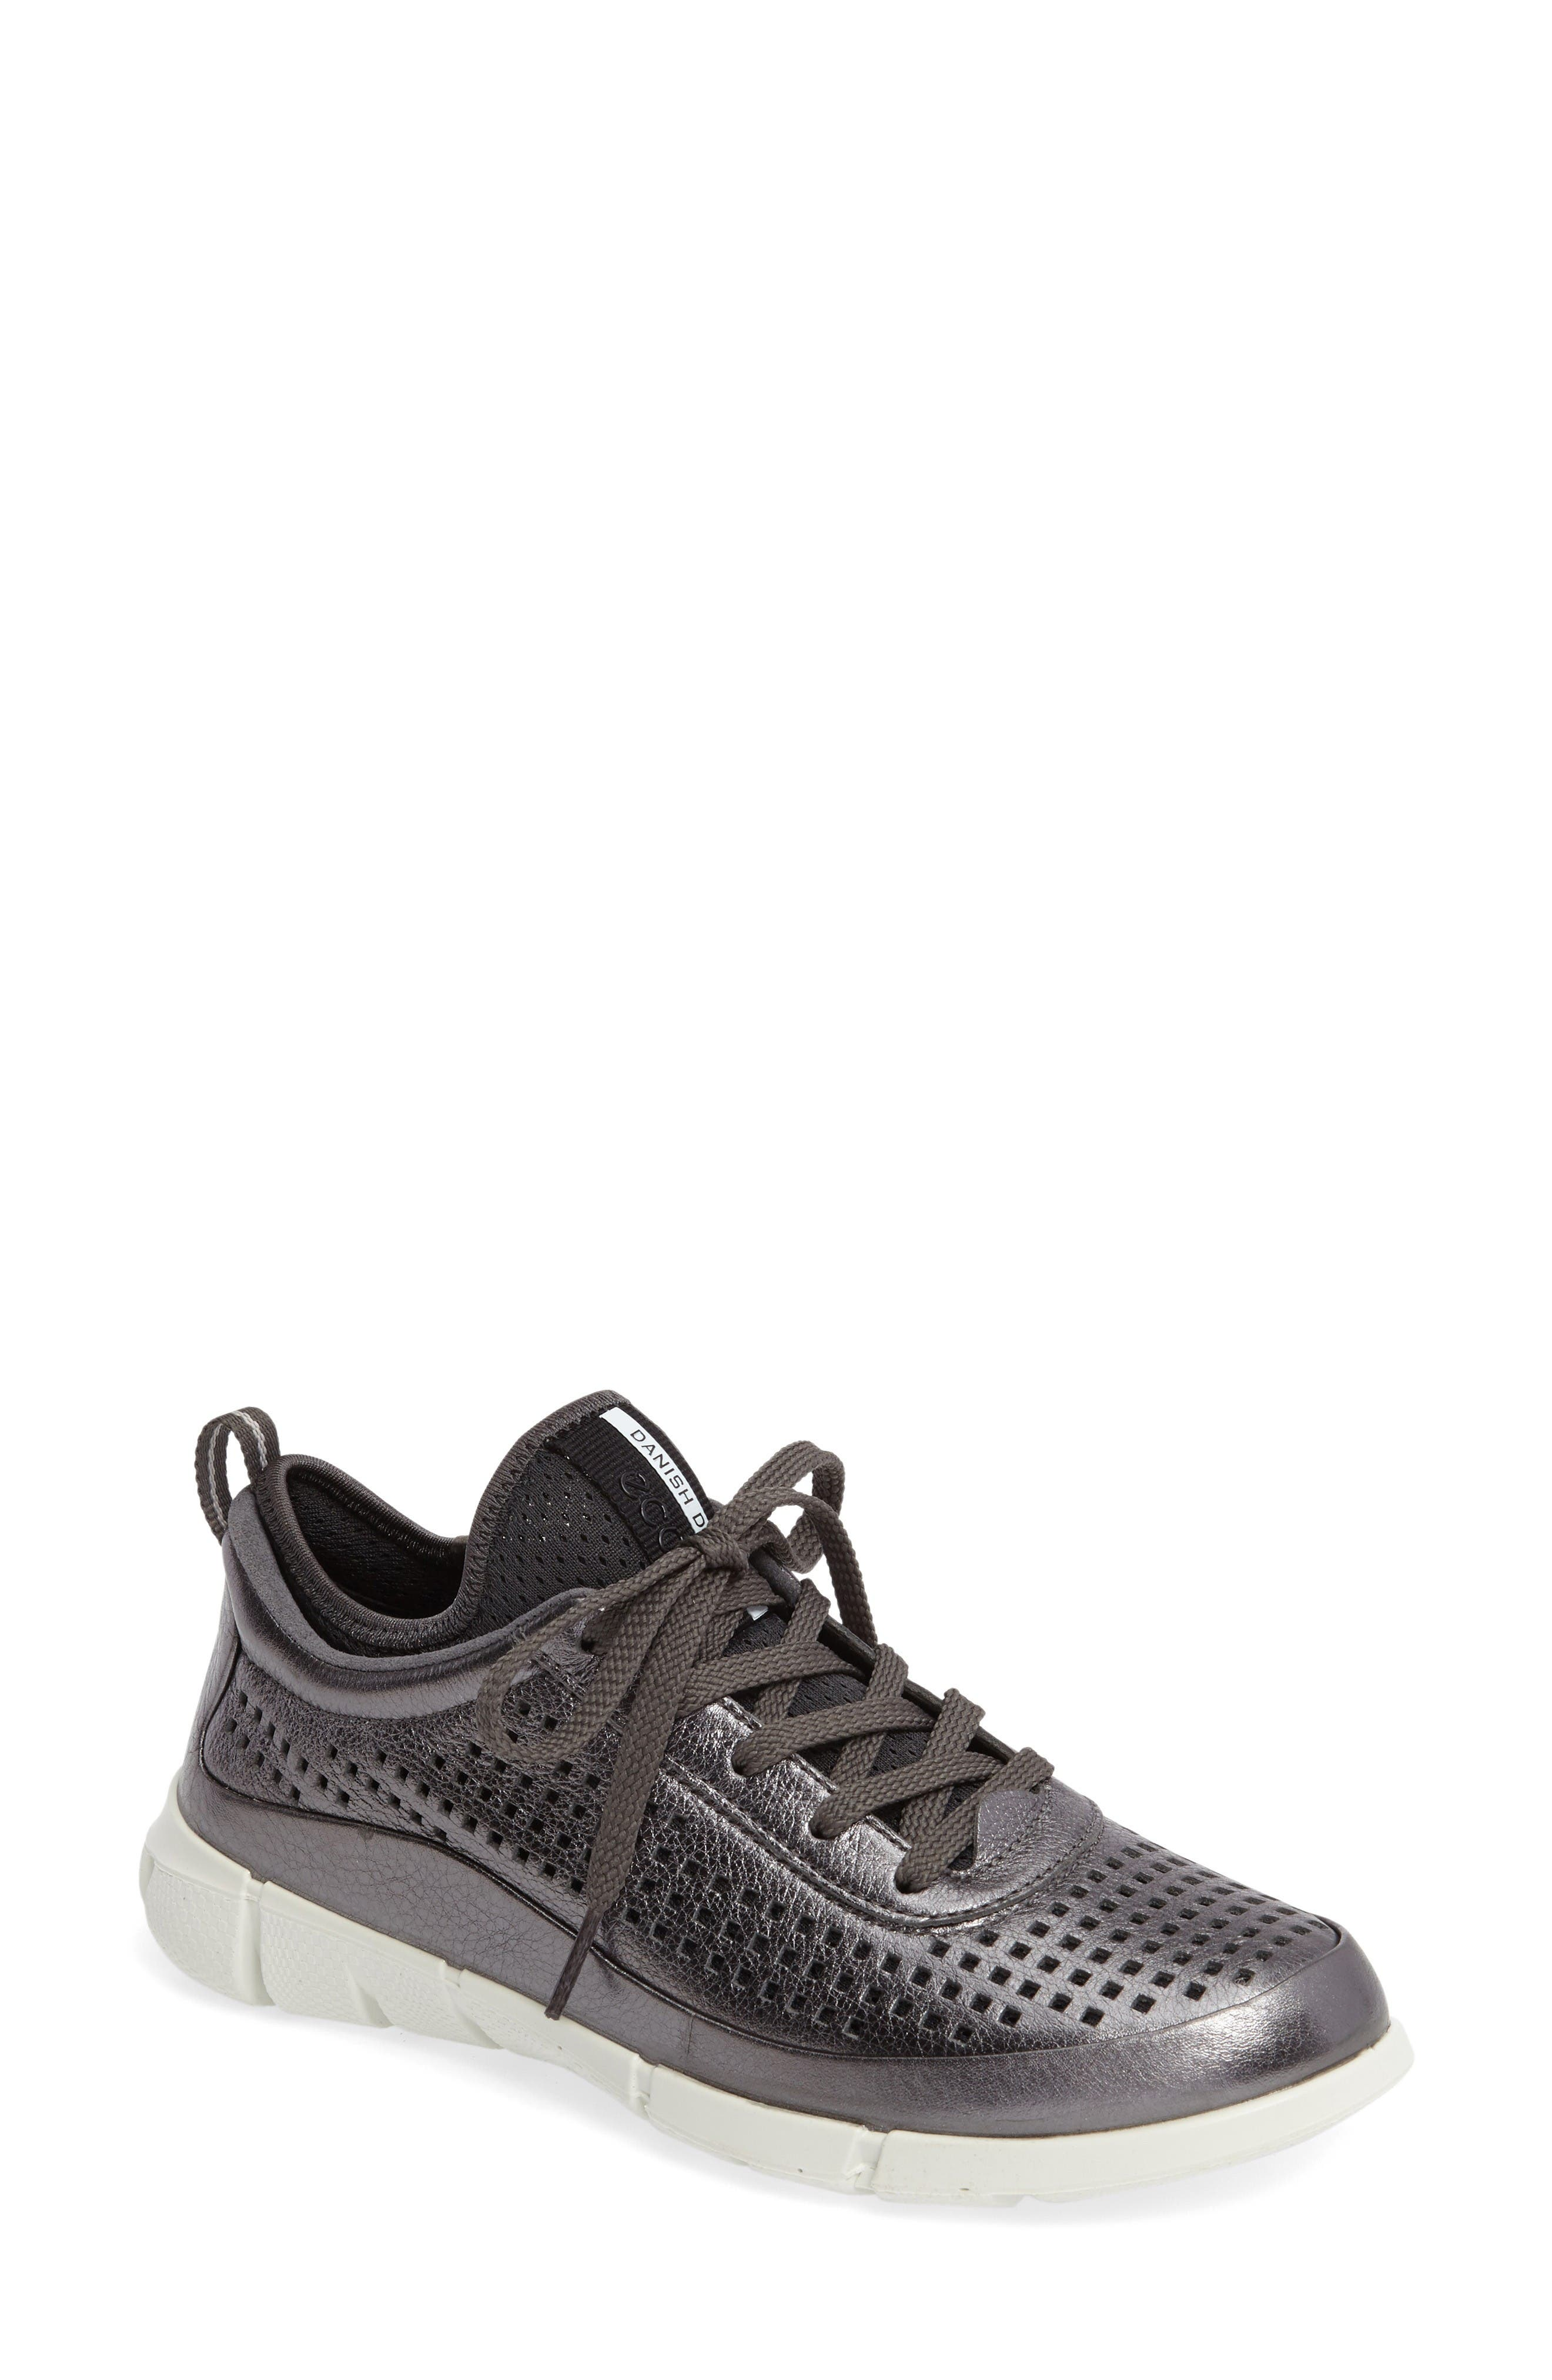 Alternate Image 1 Selected - ECCO 'Intrinsic' Leather Sneaker (Women)